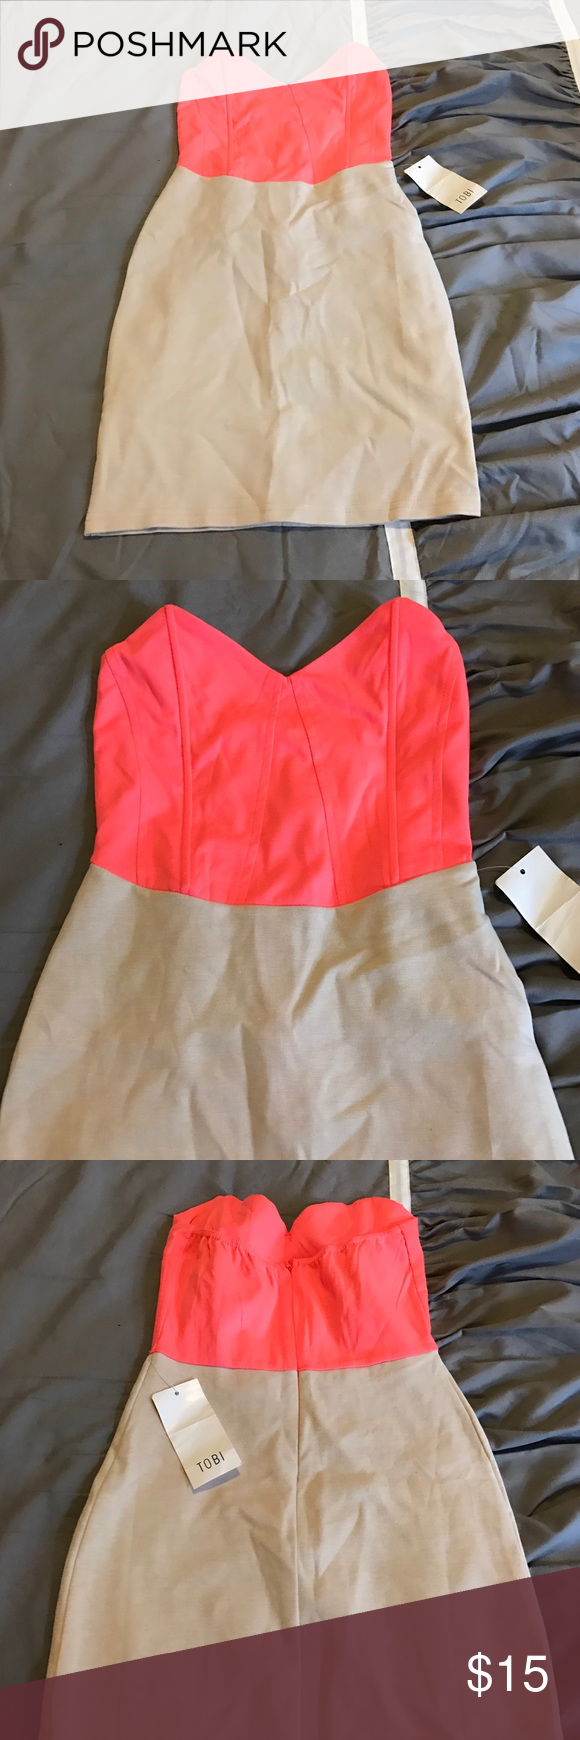 """Short strapless bodycon dress Perfect two colored dress. Strapless with a zipper on the back. Bodycon, very fitted. Brand new and never worn! Size small. From """"Tobi's Boutique"""" Dresses Strapless"""